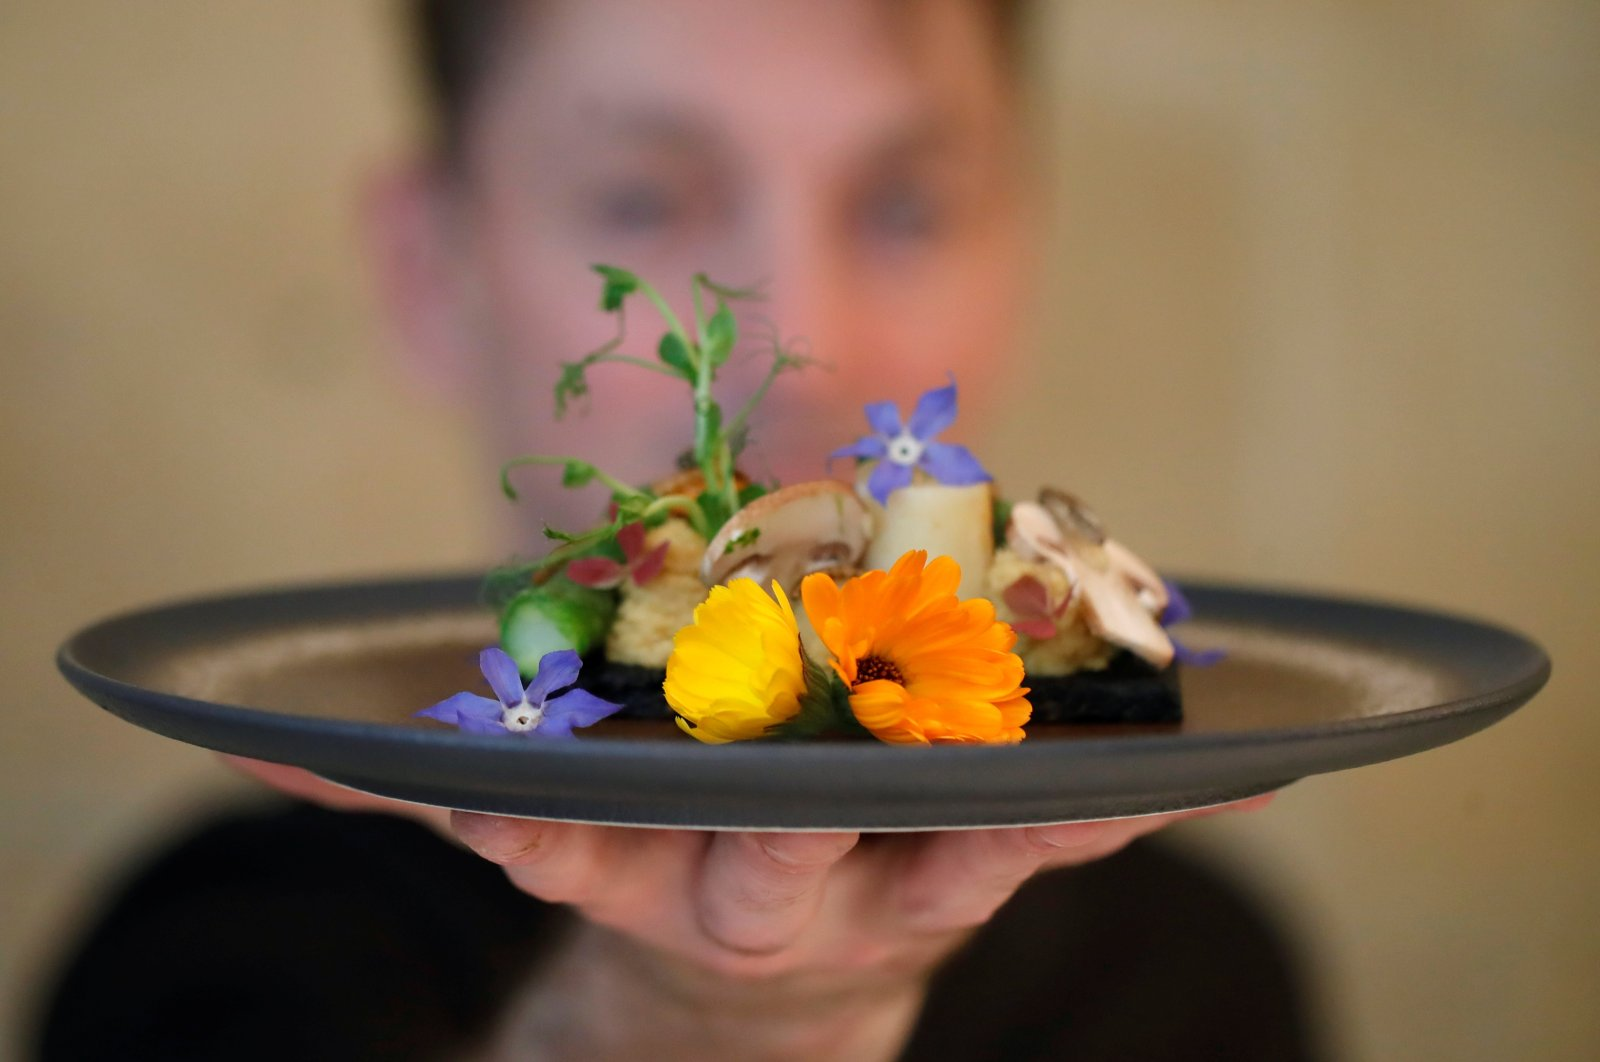 French chef Laurent Veyet displays a dish as he poses in his restaurant Inoveat serving insect-based food in Paris, France, May 12, 2021. (Reuters Photo)